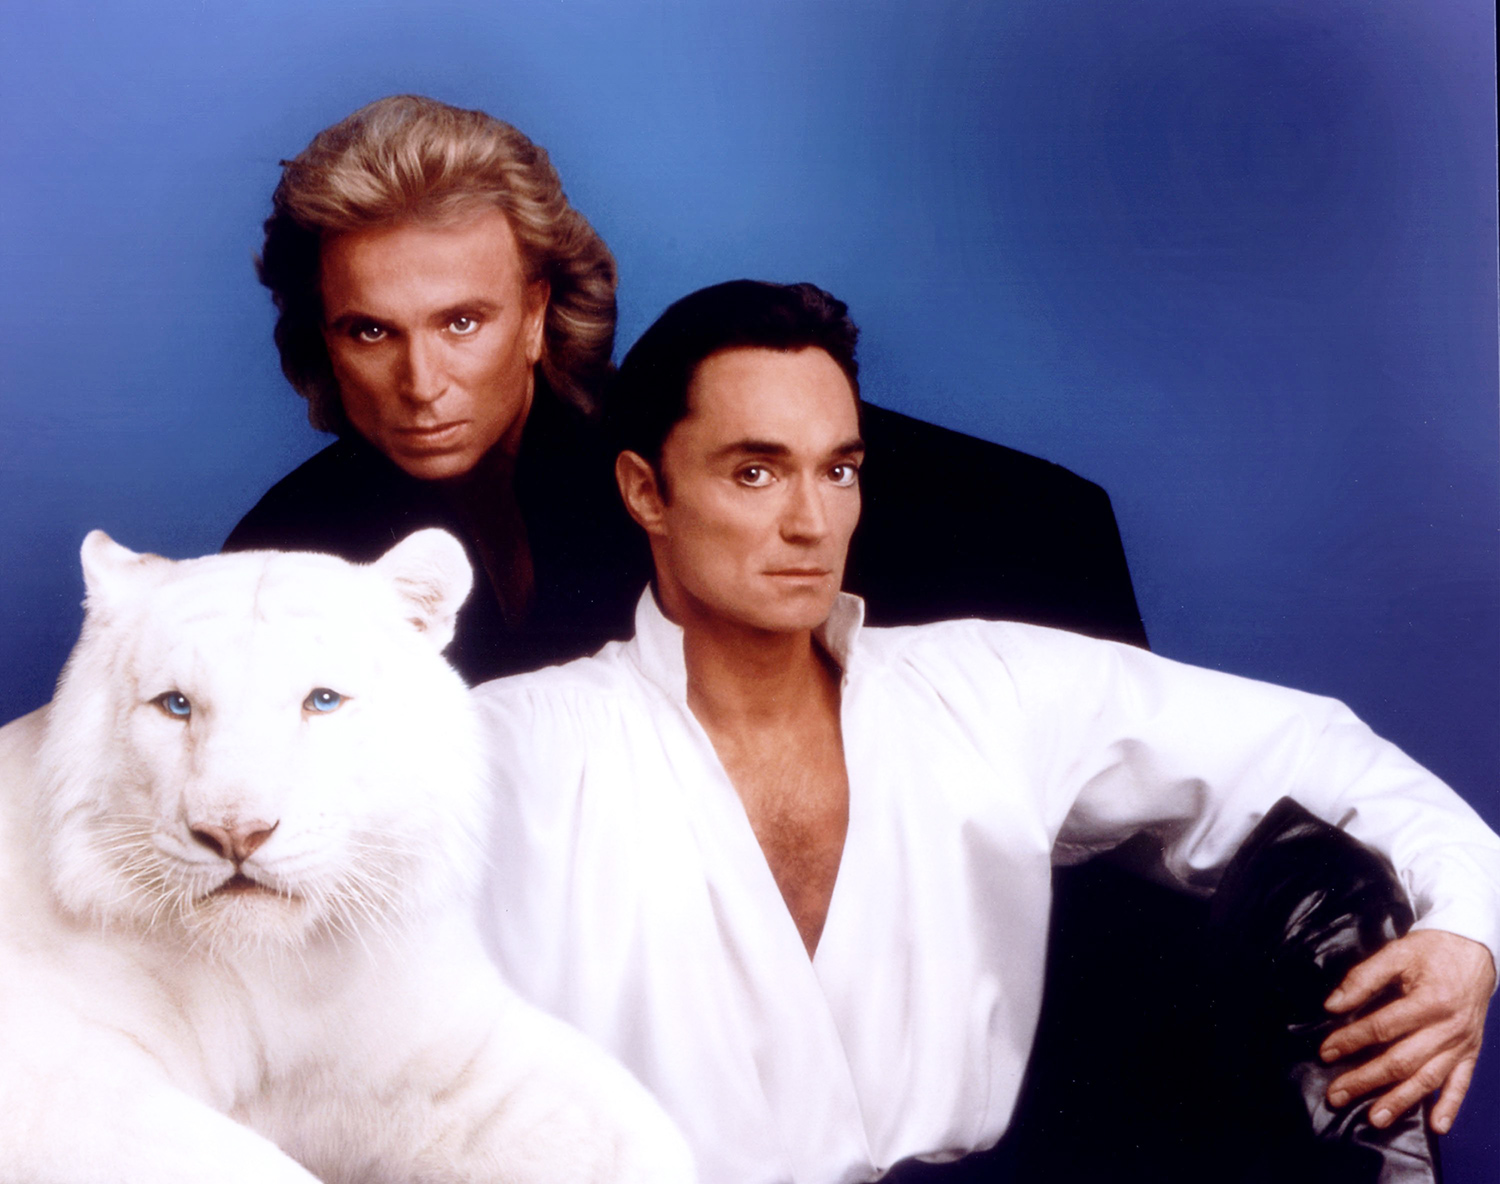 Siegfried Amp Roy To Tell Life Story In Upcoming Biopic